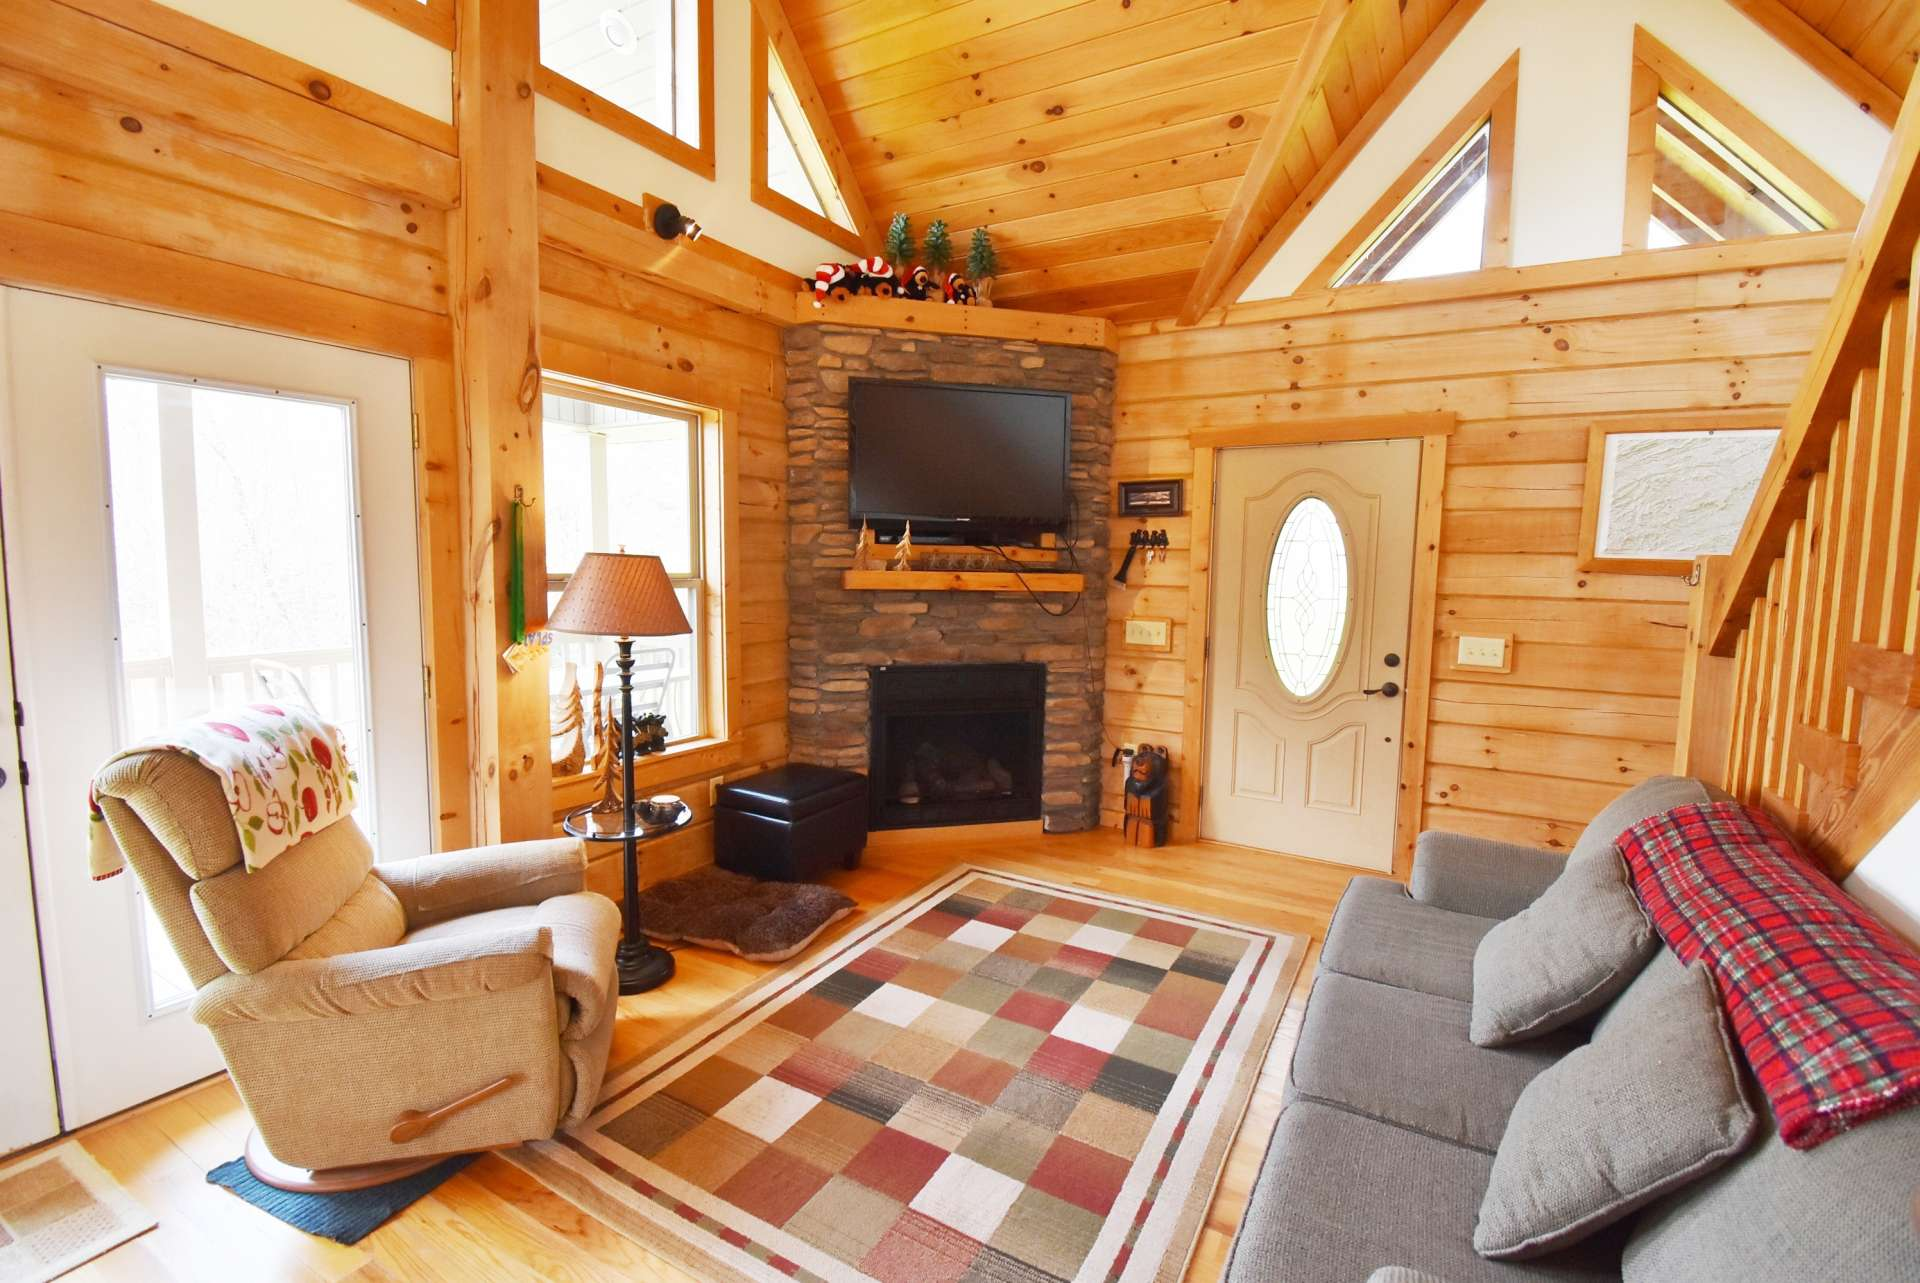 The bright and sunny vaulted great room features a wall of windows  filling the space with natural light, gleaming hardwood floors, and a stone fireplace with gas logs for added warmth and fireside romance on chilly winter evenings.